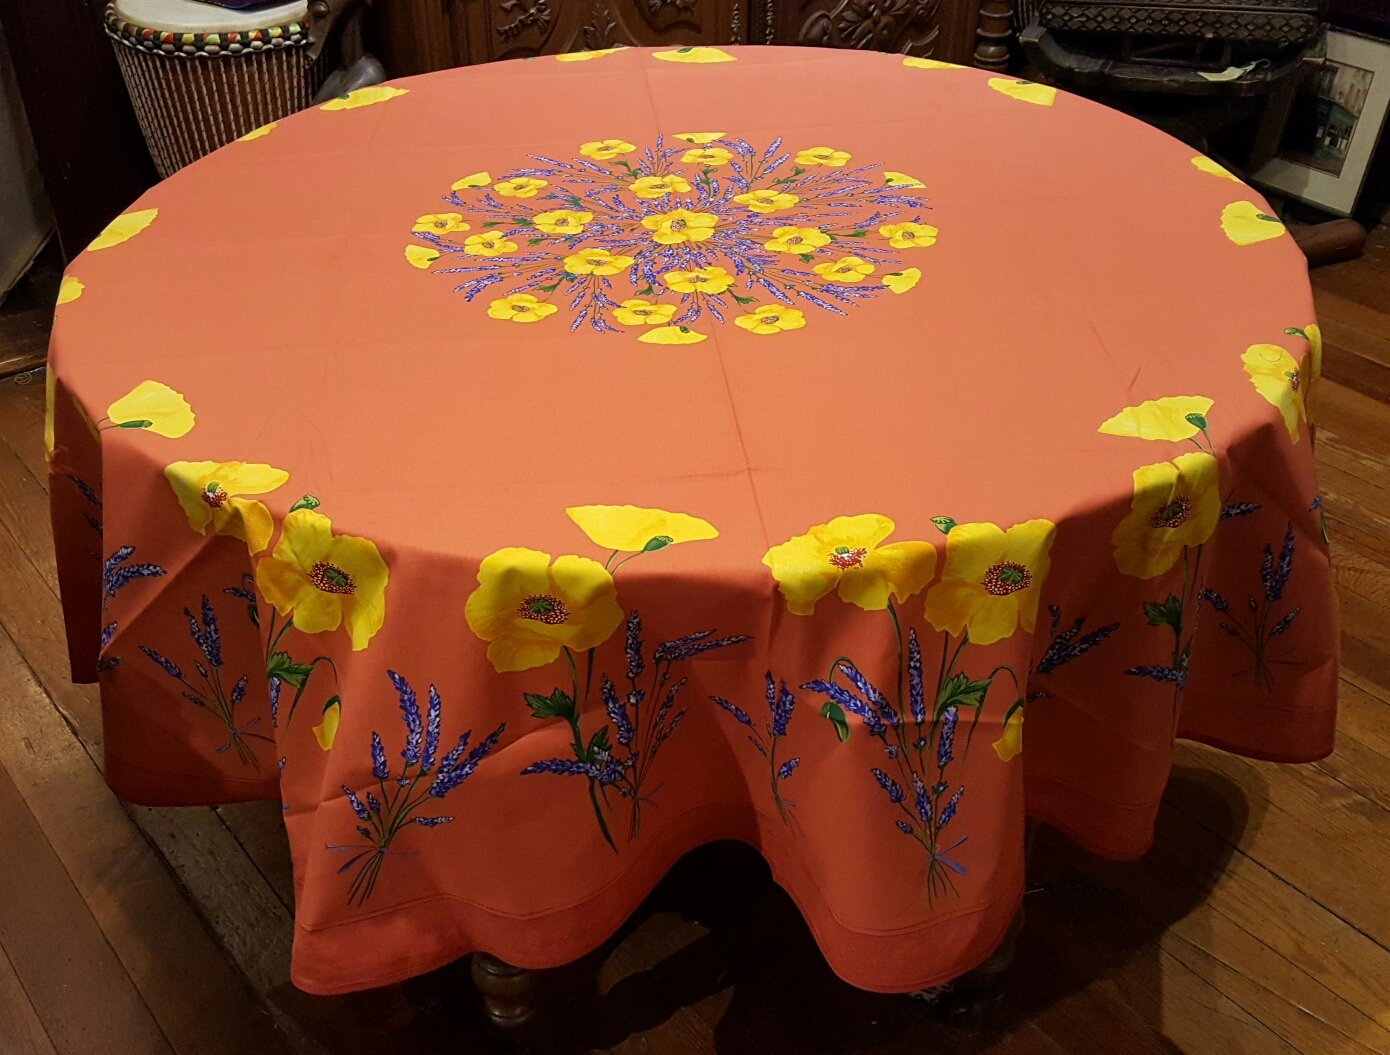 70 French Cotton Round Tablecloth Poppy (Red)